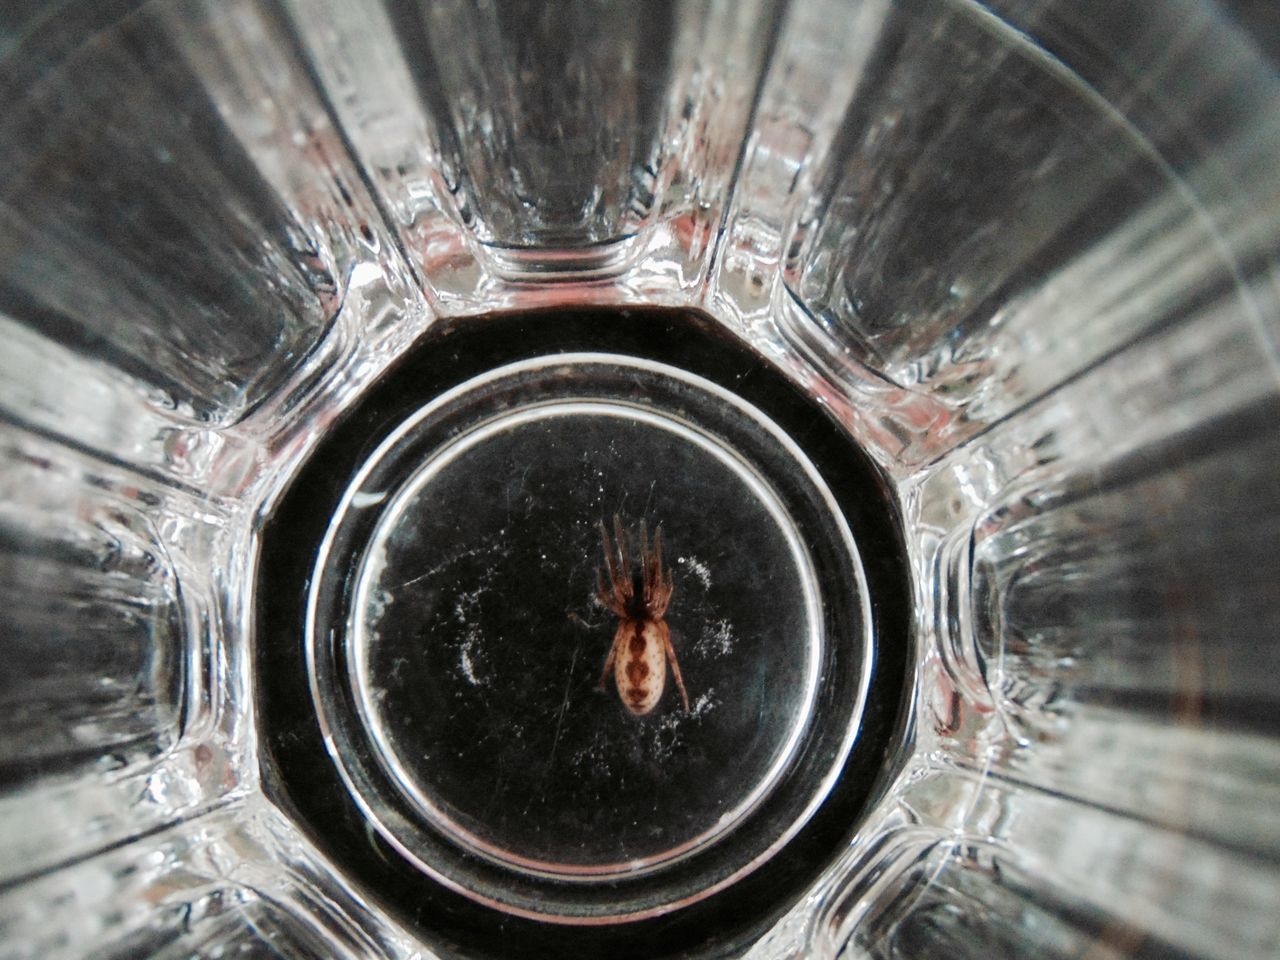 Bottom Of The Glass Close-up Container Day Dirty Focus On Foreground Glad I Checked Glass No People Spider Spiders Still Life